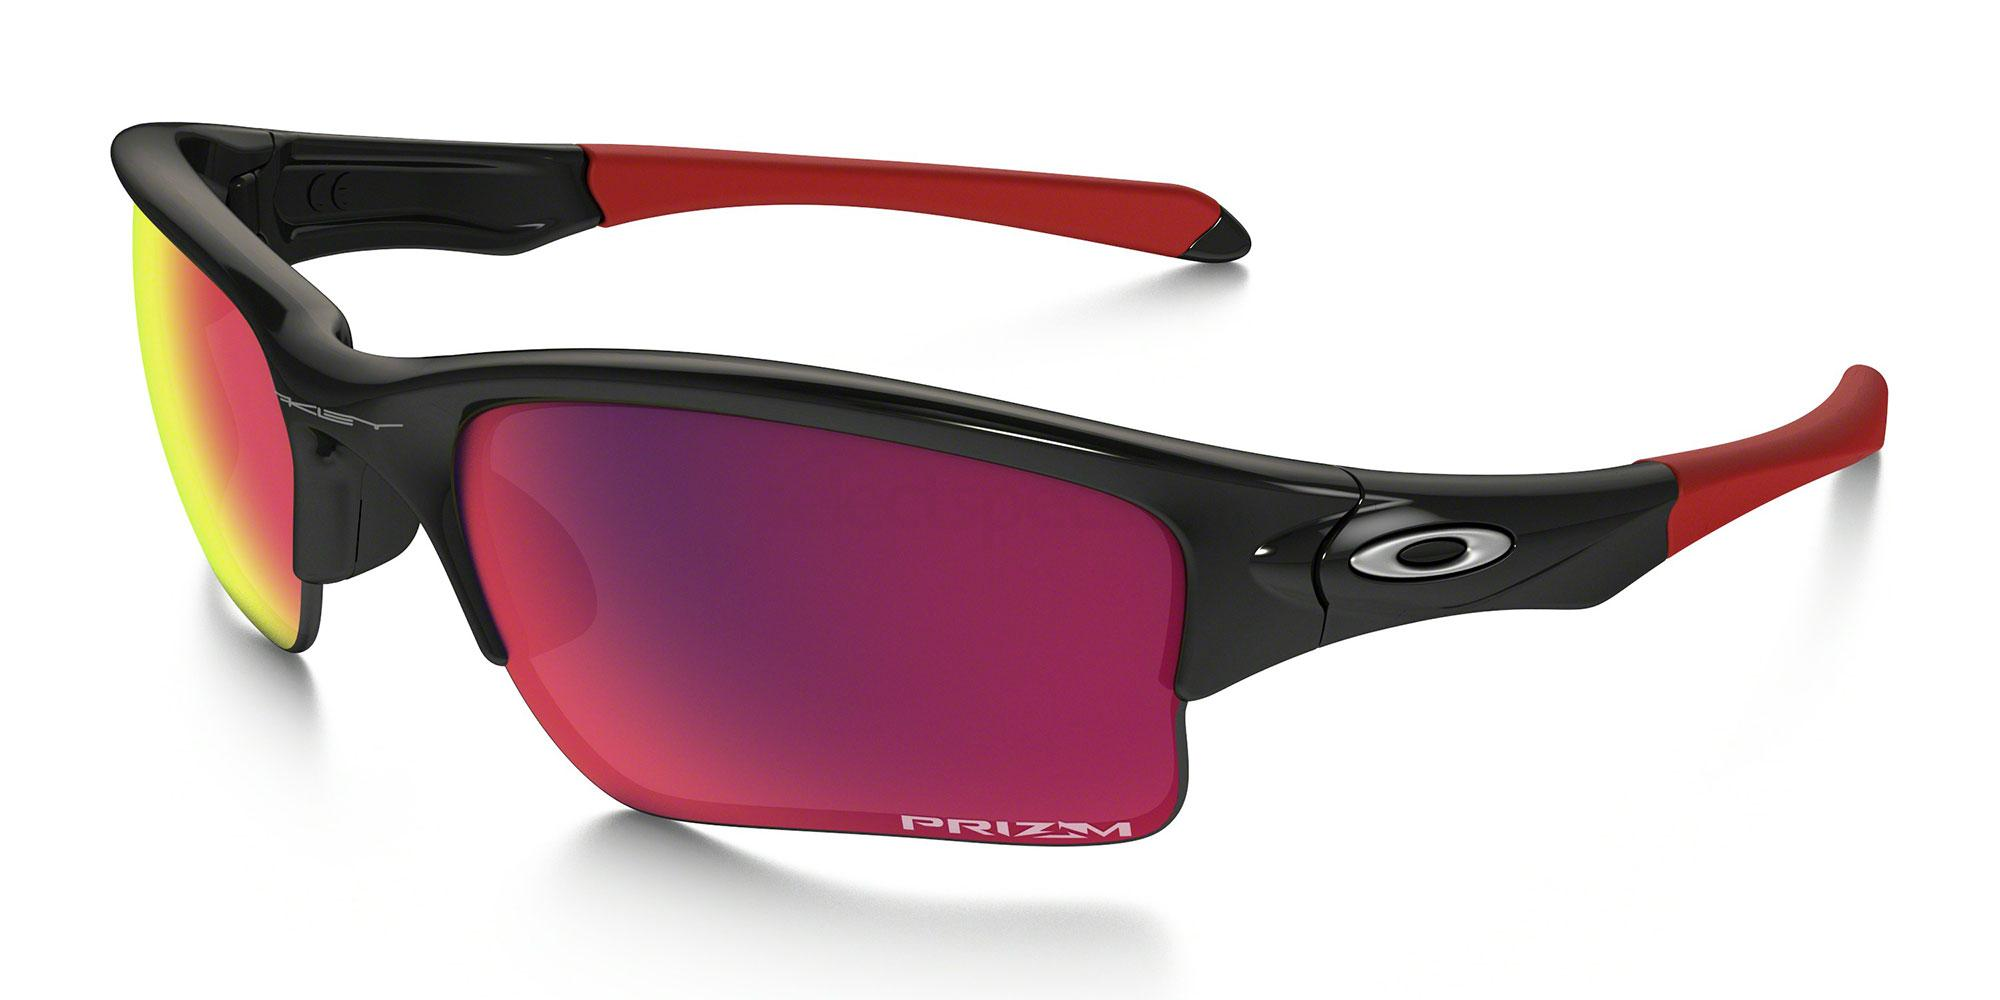 920018 OO9200 QUARTER JACKET (YOUTH FIT) Sunglasses, Oakley